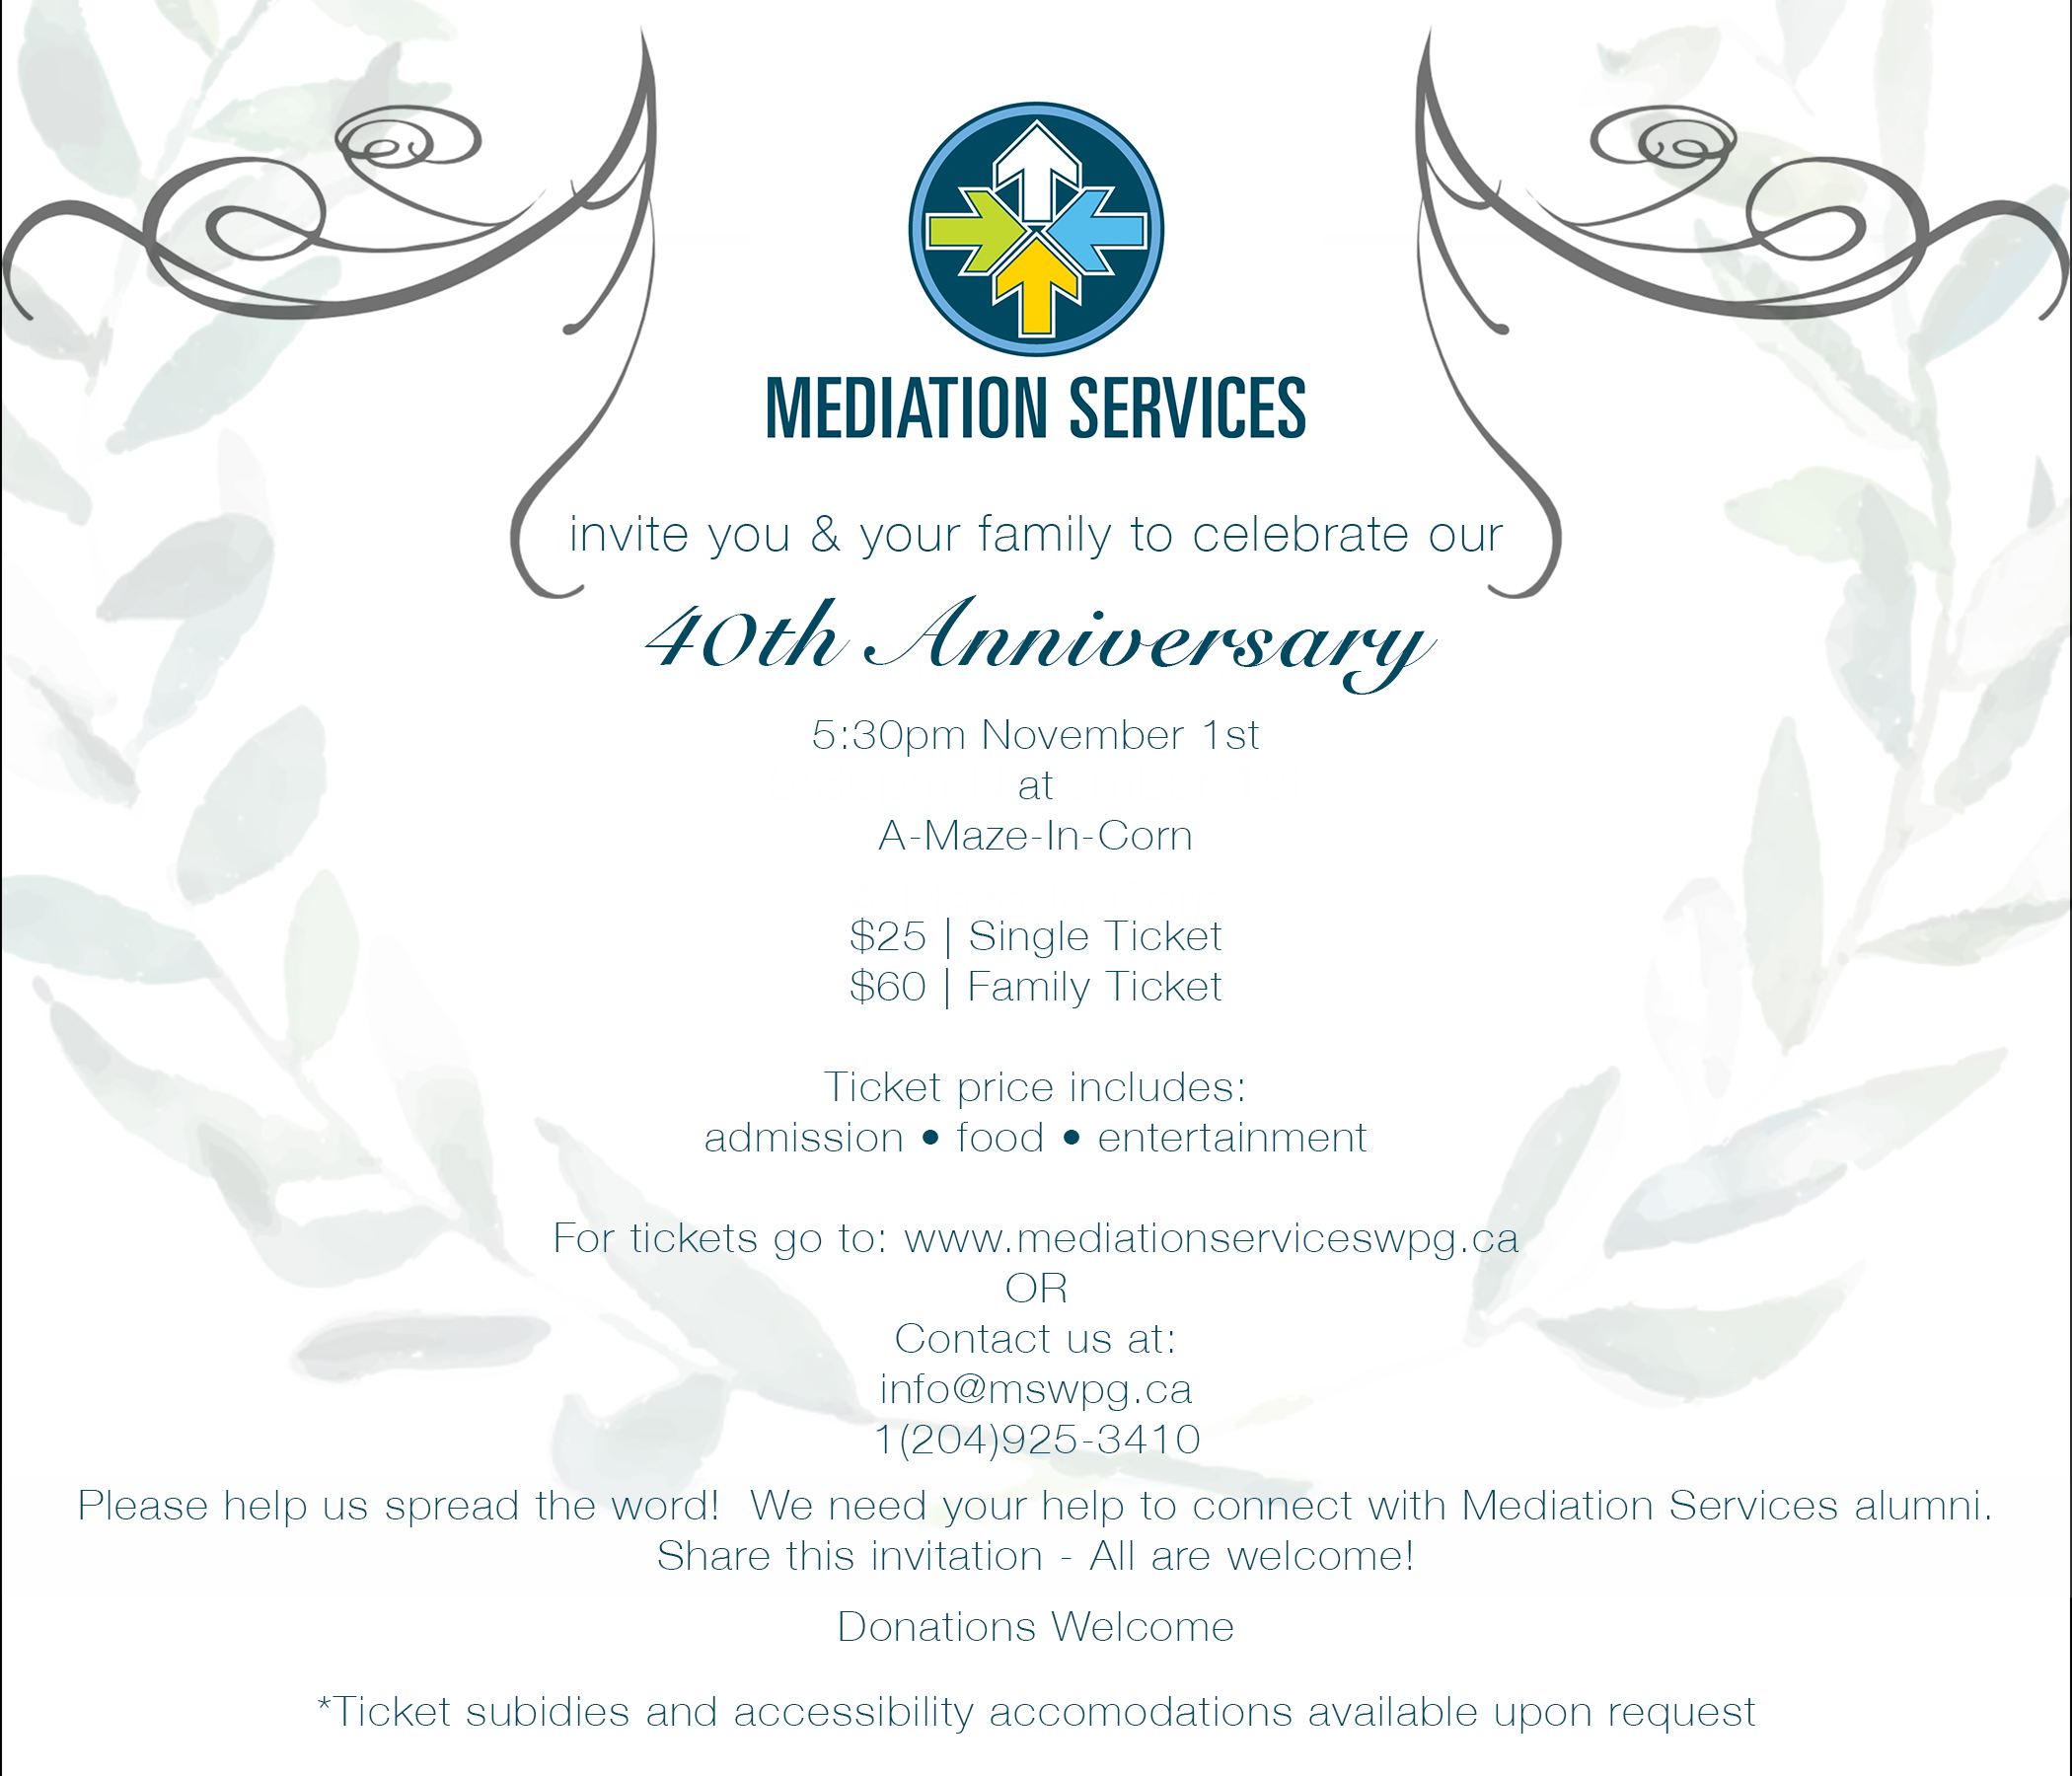 Mediation Services 40th Anniversary Invite.jpg